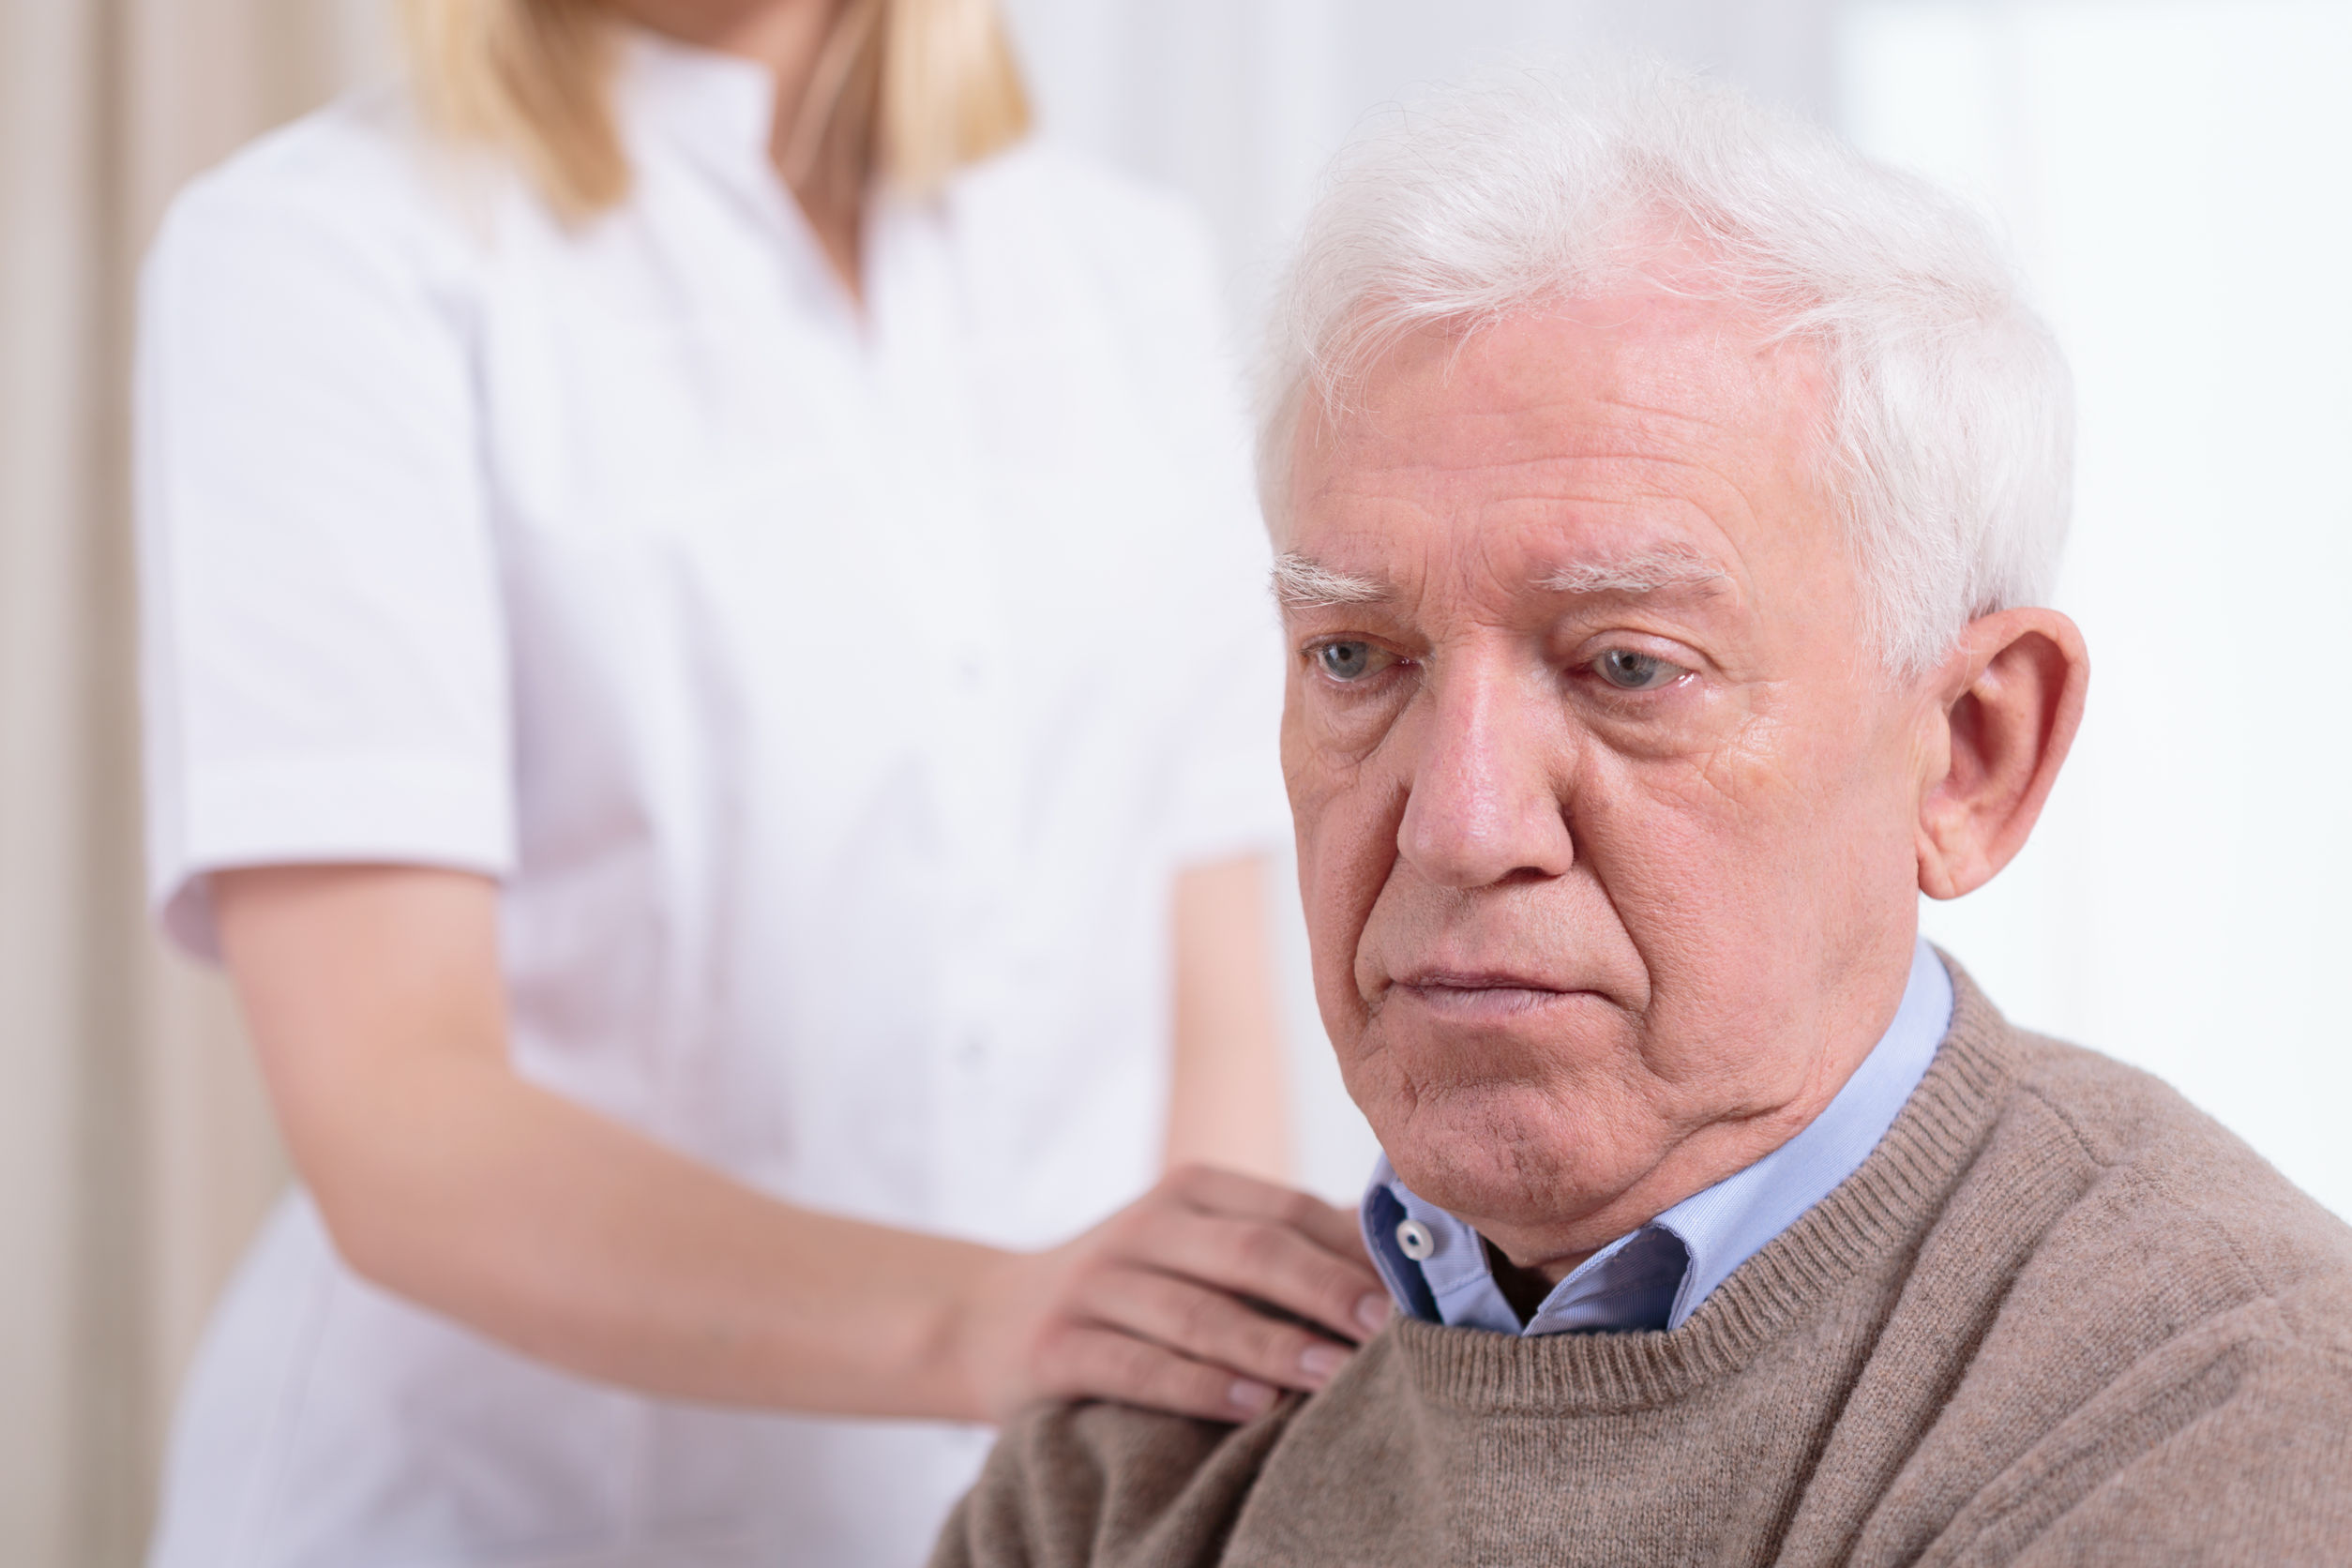 OVER-45S BELIEVE DELAYS TO SOCIAL CARE REFORMS UNDERMINED FIGHT AGAINST COVID-19